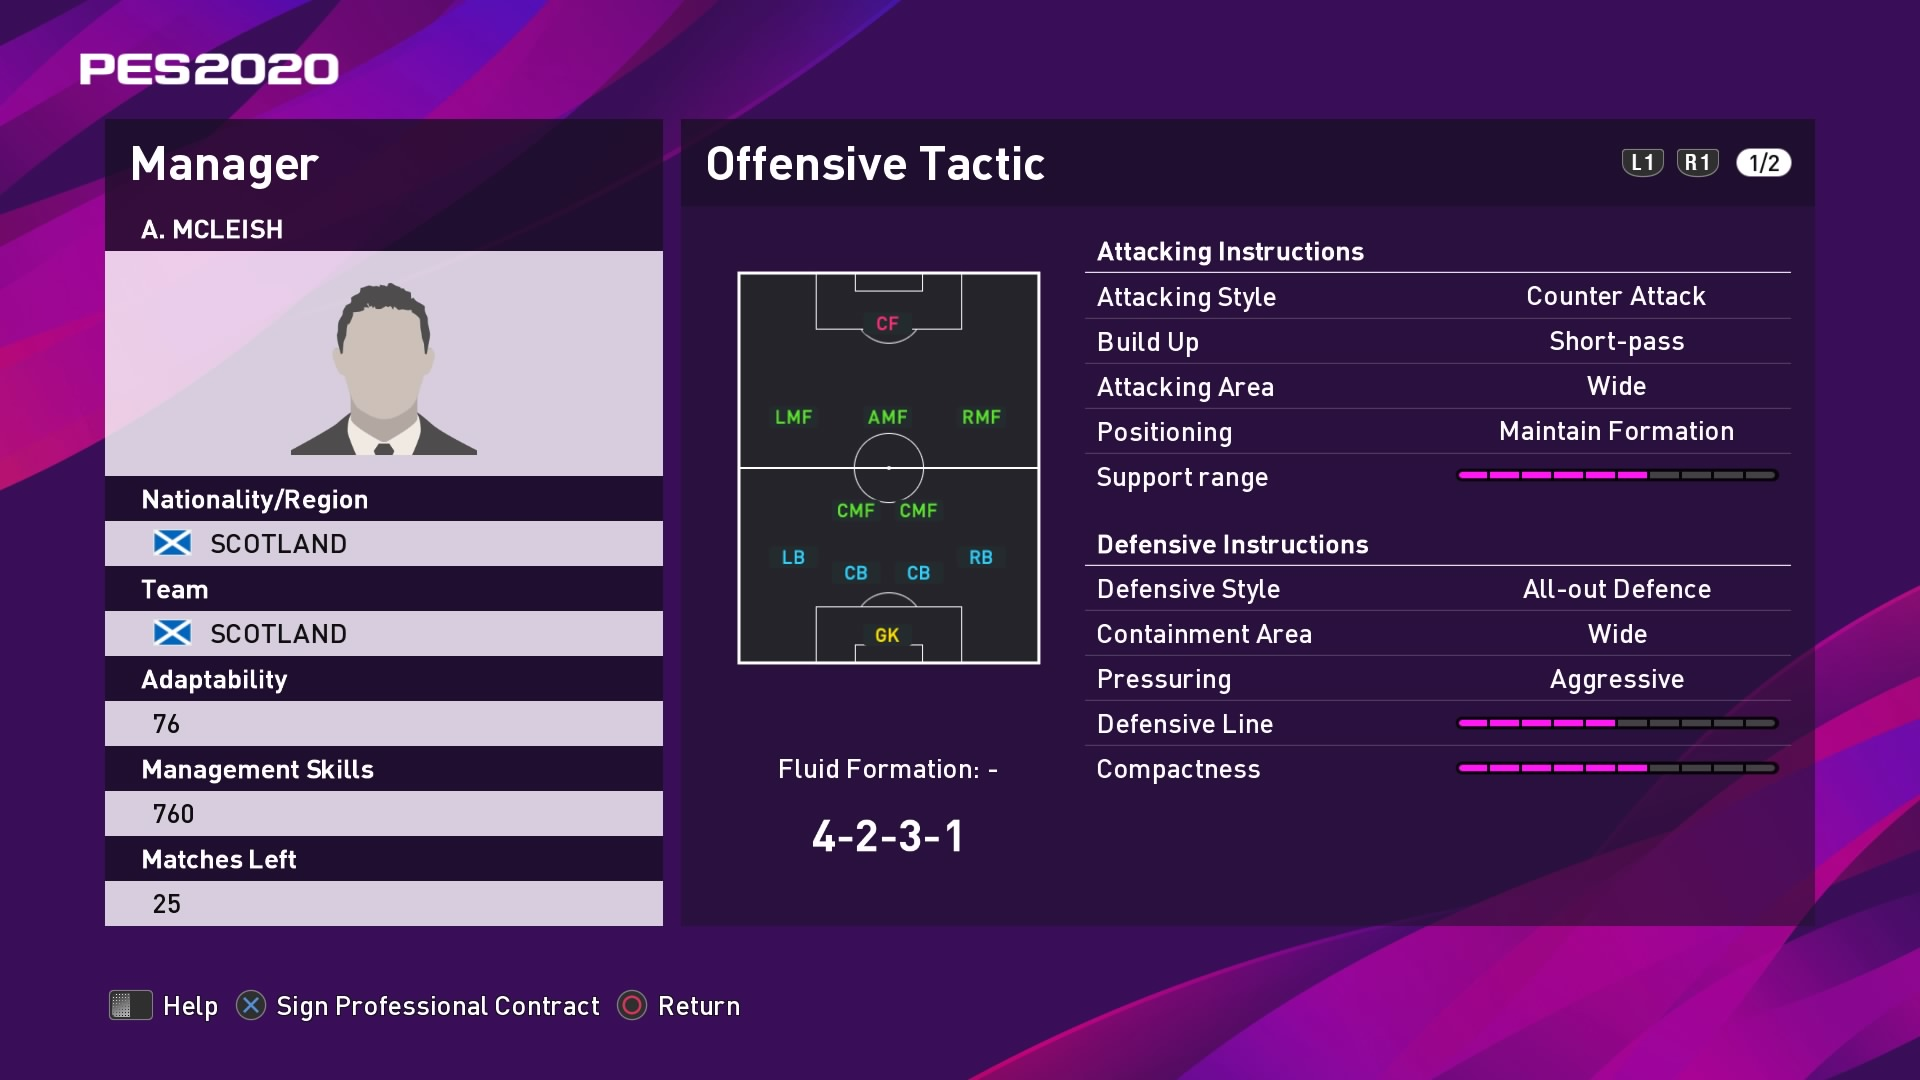 A. McLeish (Steve Clarke) Offensive Tactic in PES 2020 myClub